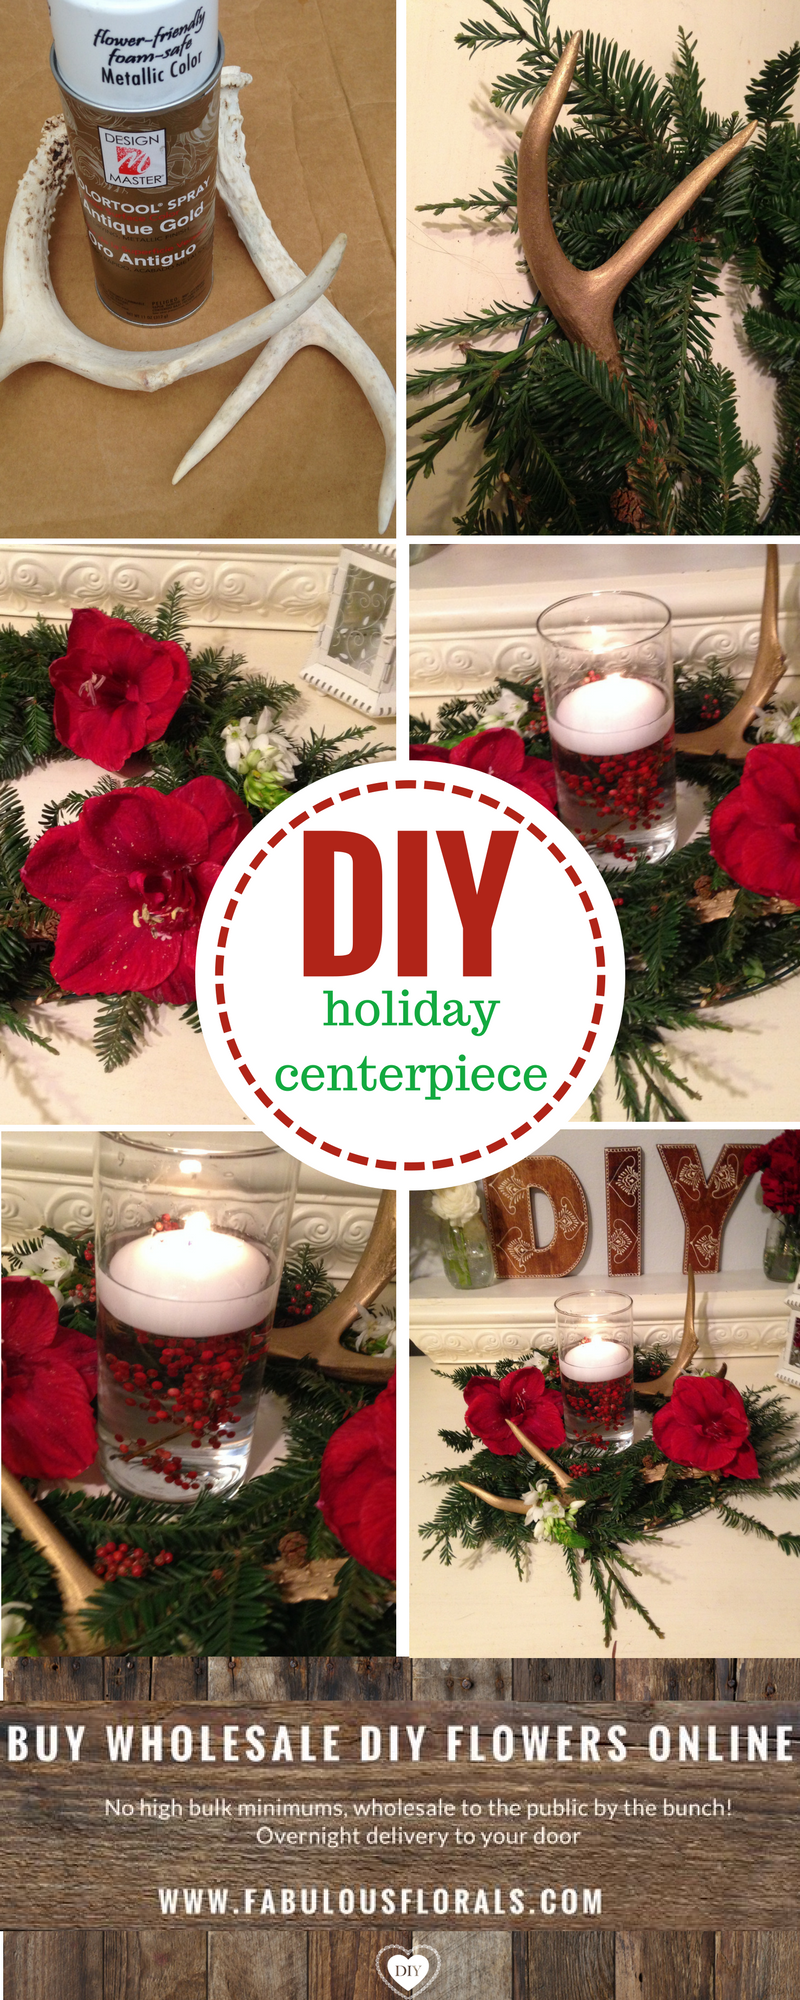 DIY Holiday antler Centerpiece 2017 Christmas flower trends!  www.fabulousflorals.com The #